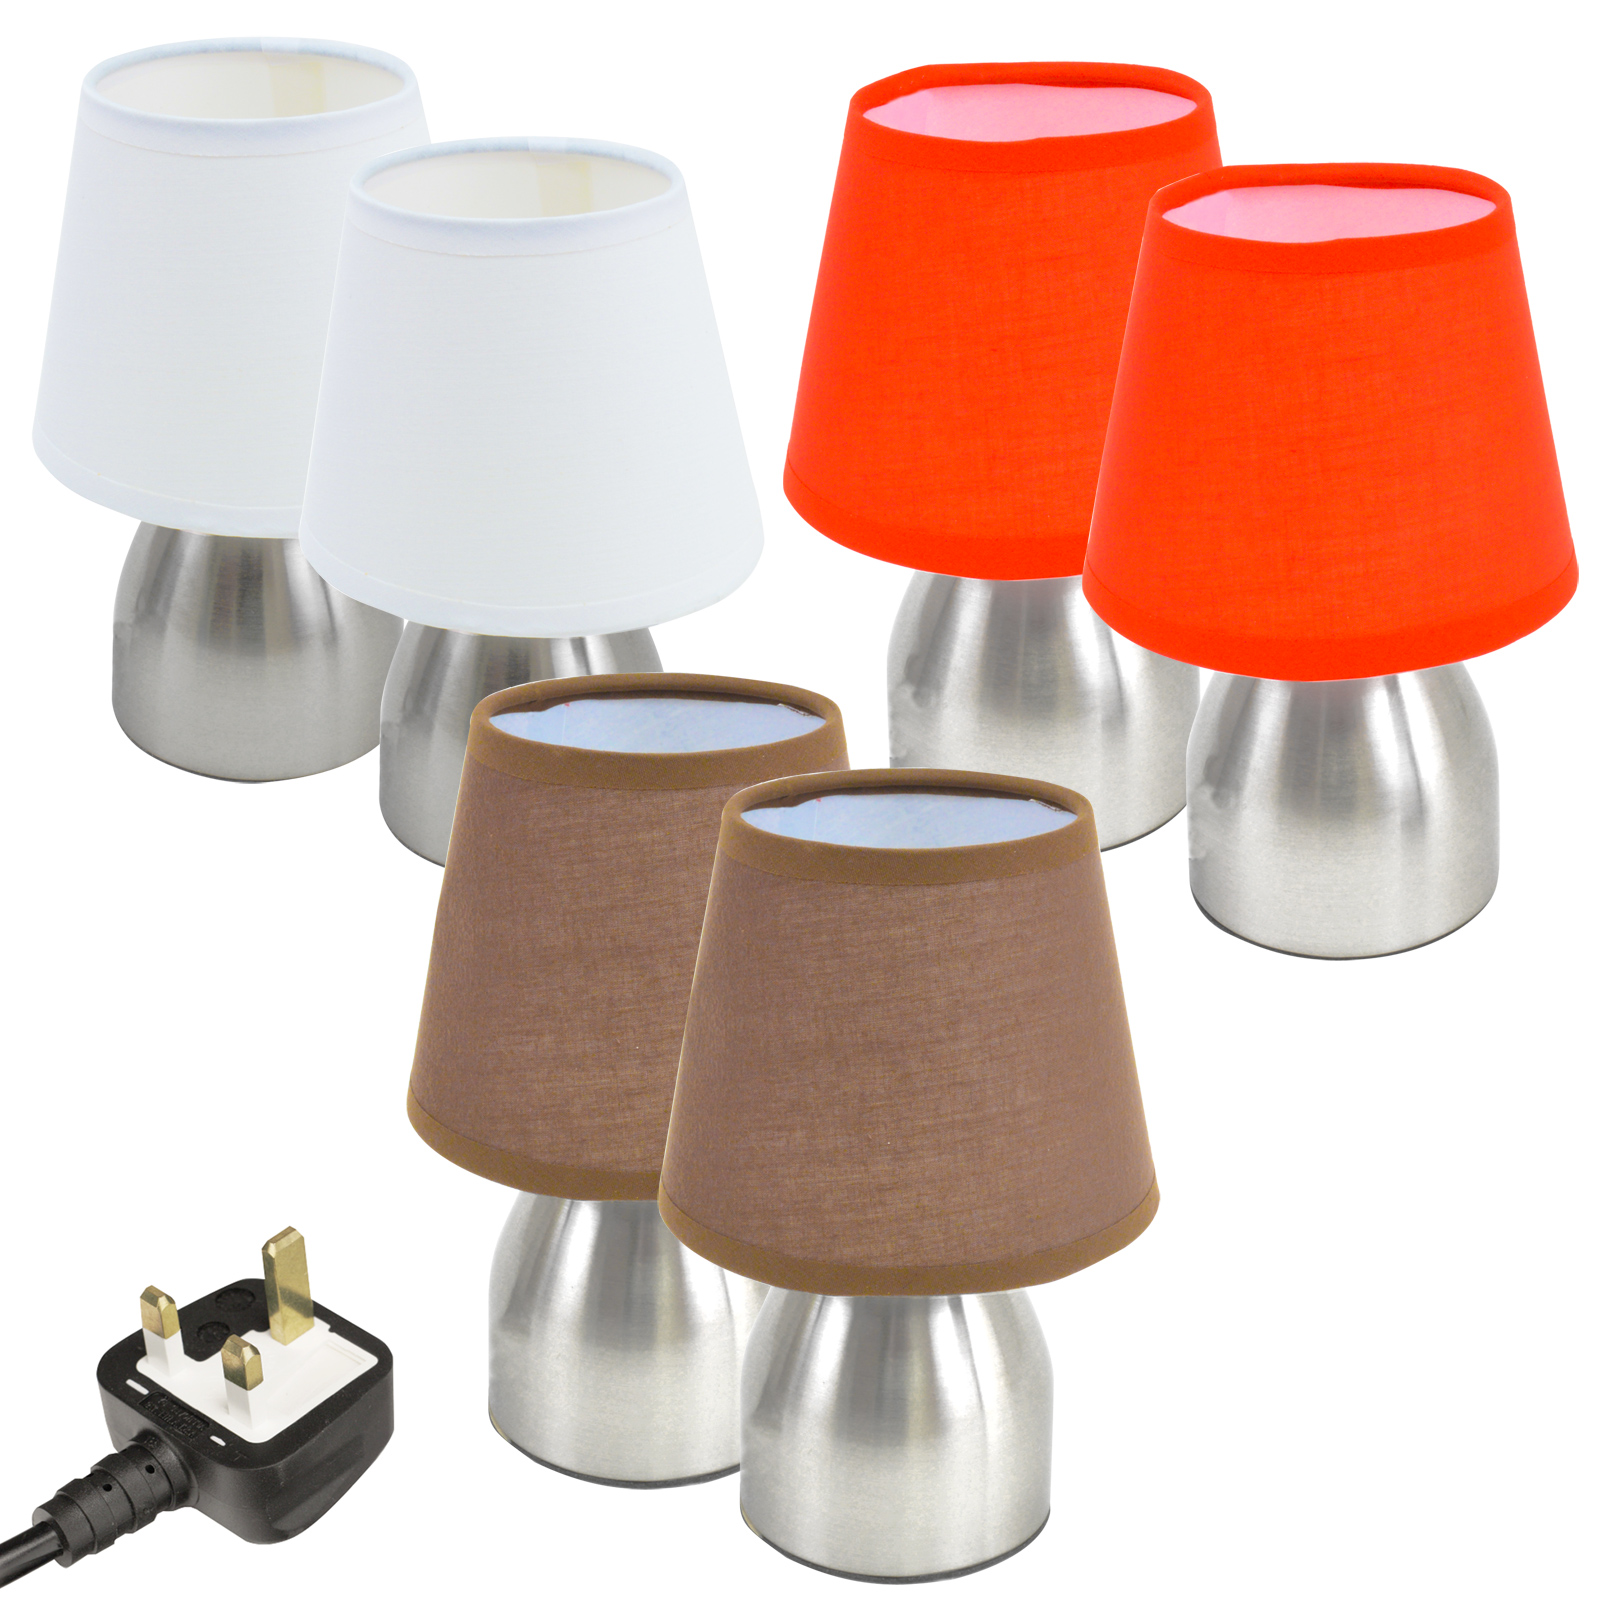 Touch lamps lights light small compact bedside set of 2 pair table dimmer ebay - Touch lamps for bedside table ...